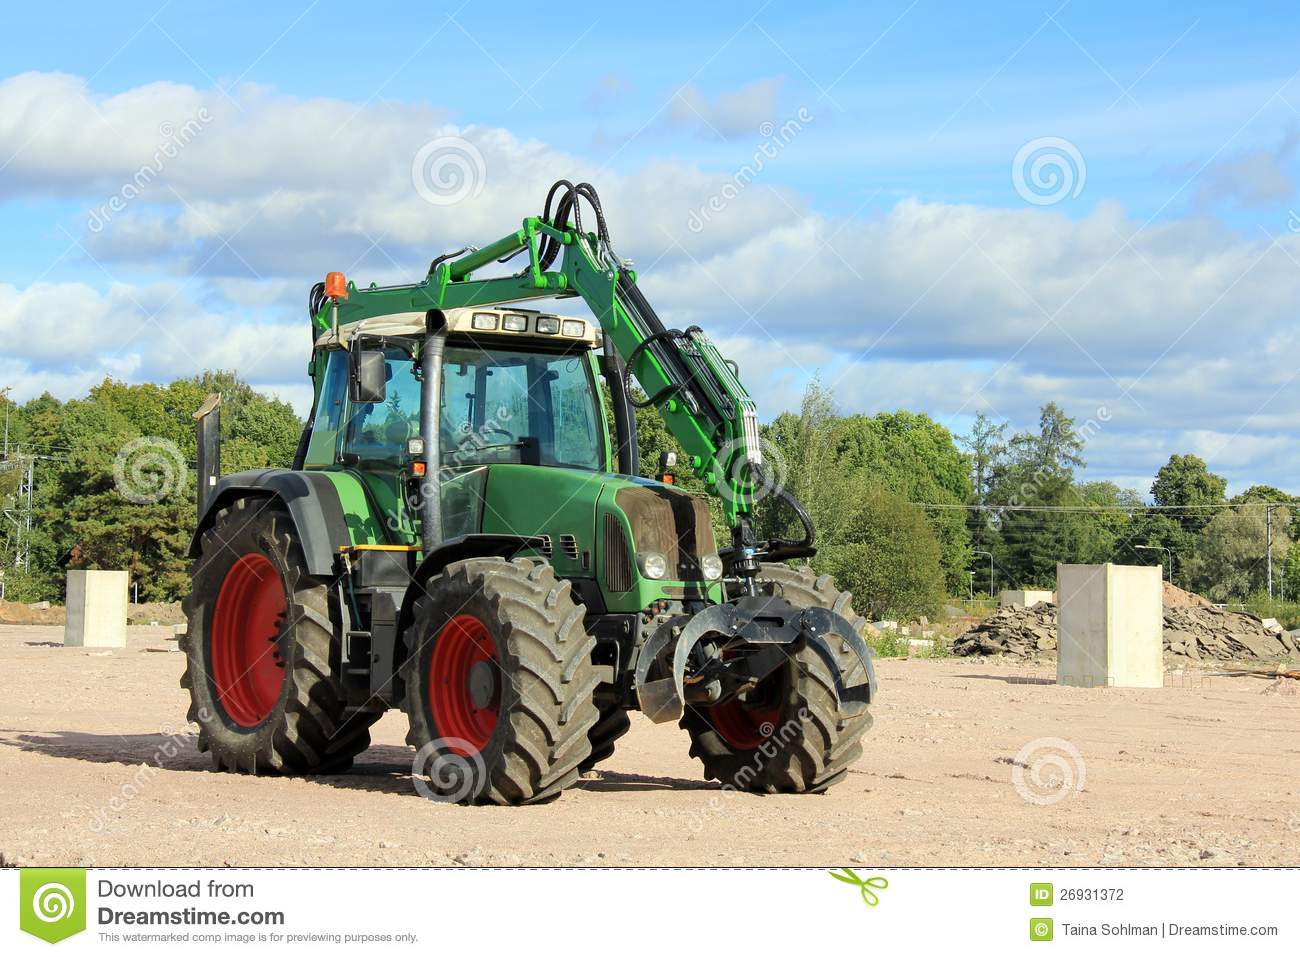 Up The Tractor Green Tractor With Bucket Cartoon : Grapple tractor at construction site stock photography